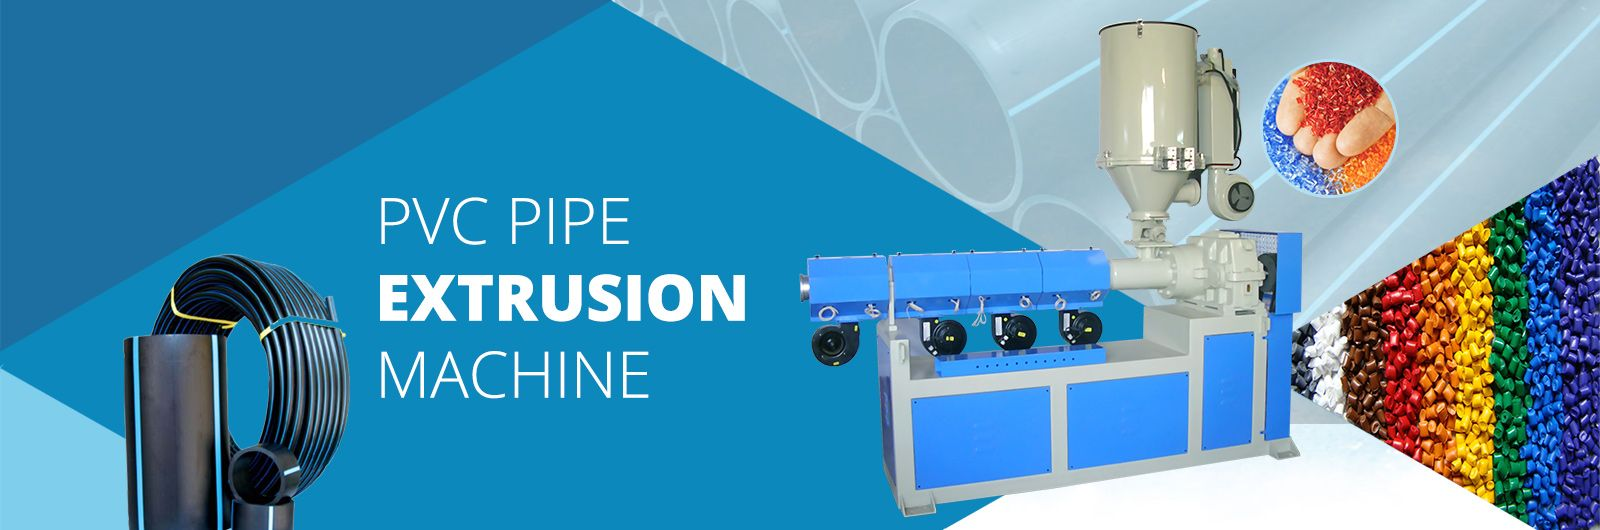 pvc pipe extrusion machines